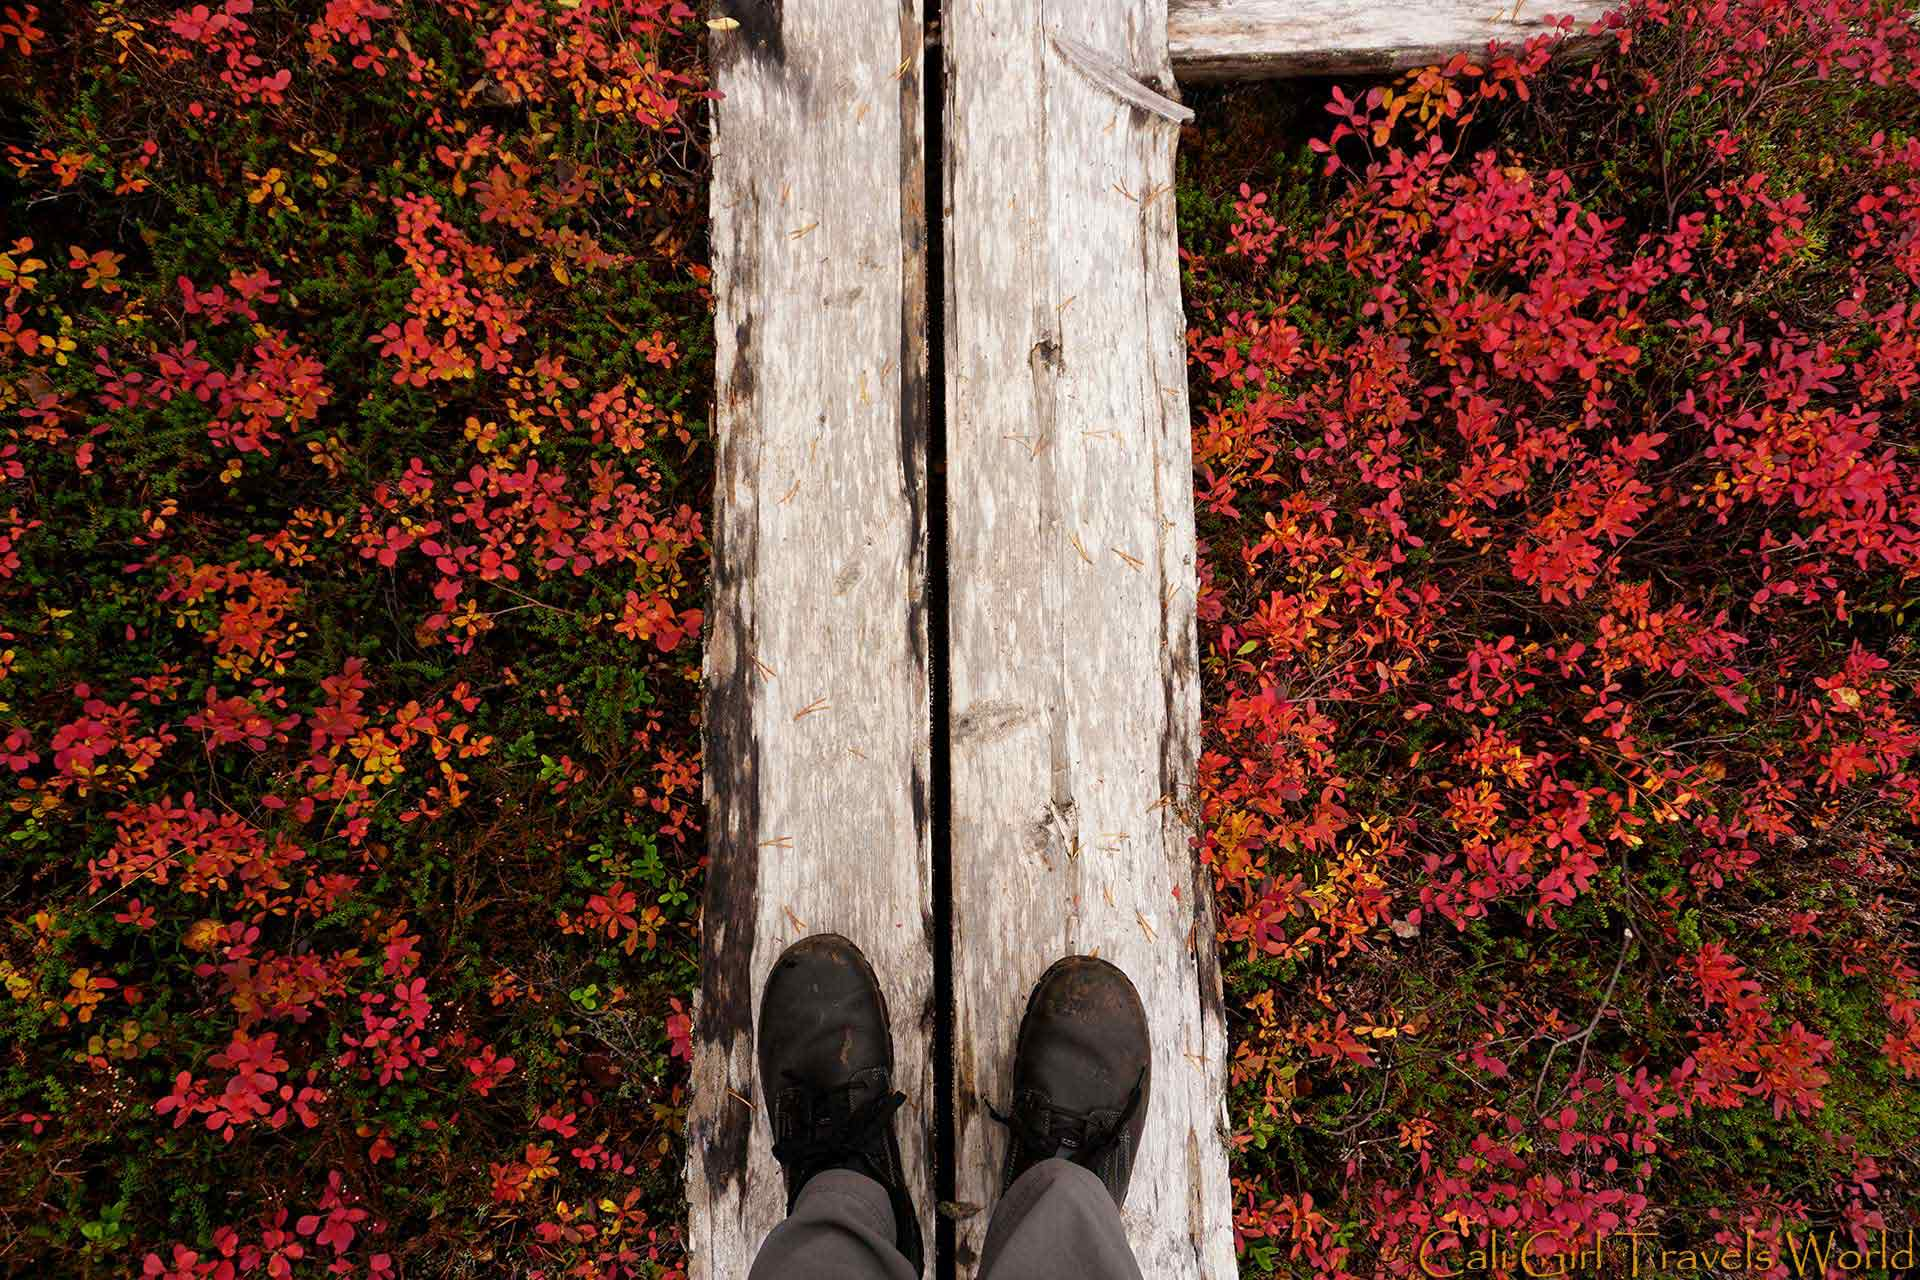 Cali Girl Travels World Boots on a white pathway above hundreds of yellow and red autumn leaves in Inari, Finland.